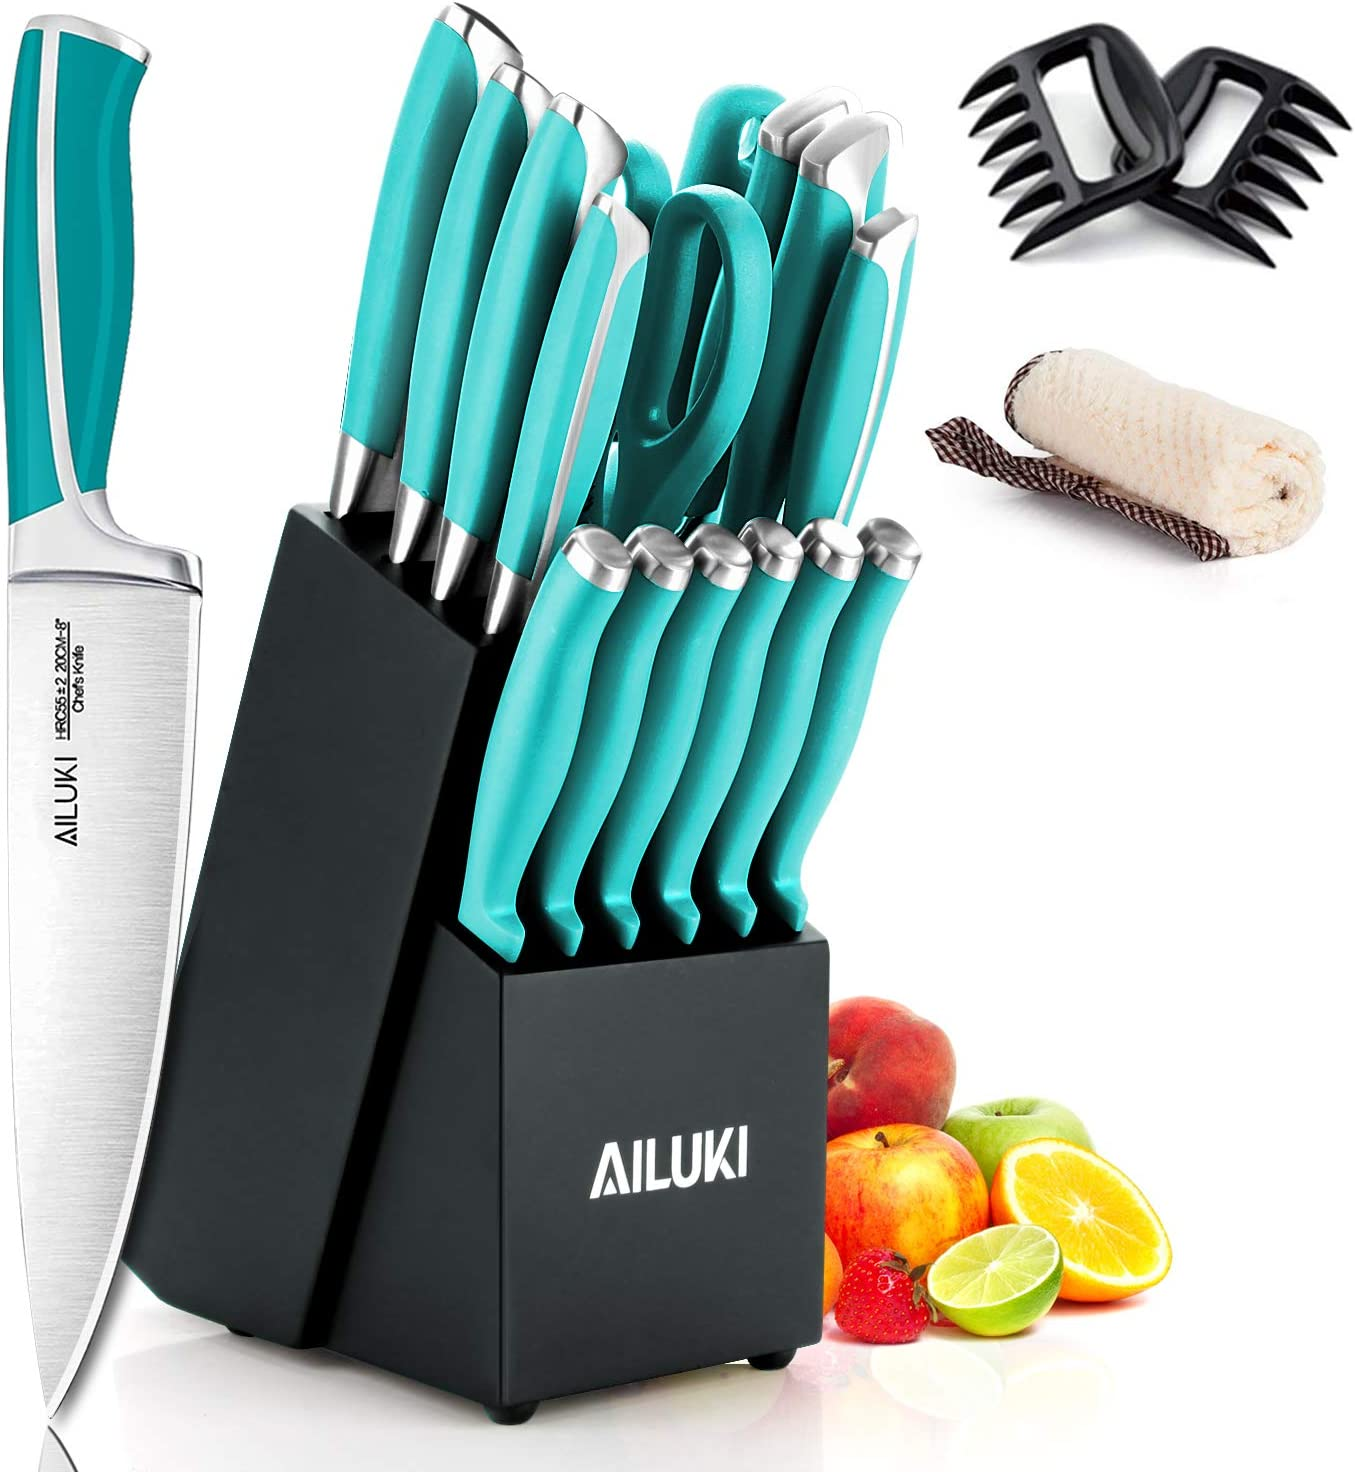 Amazon Com Knife Set 18 Piece Kitchen Knife Set With Block Wooden And Sharpener Professional High Carbon German Stainless Steel Chef Knife Set Ultra Sharp Full Tang Forged White Knives Set Blue Kitchen